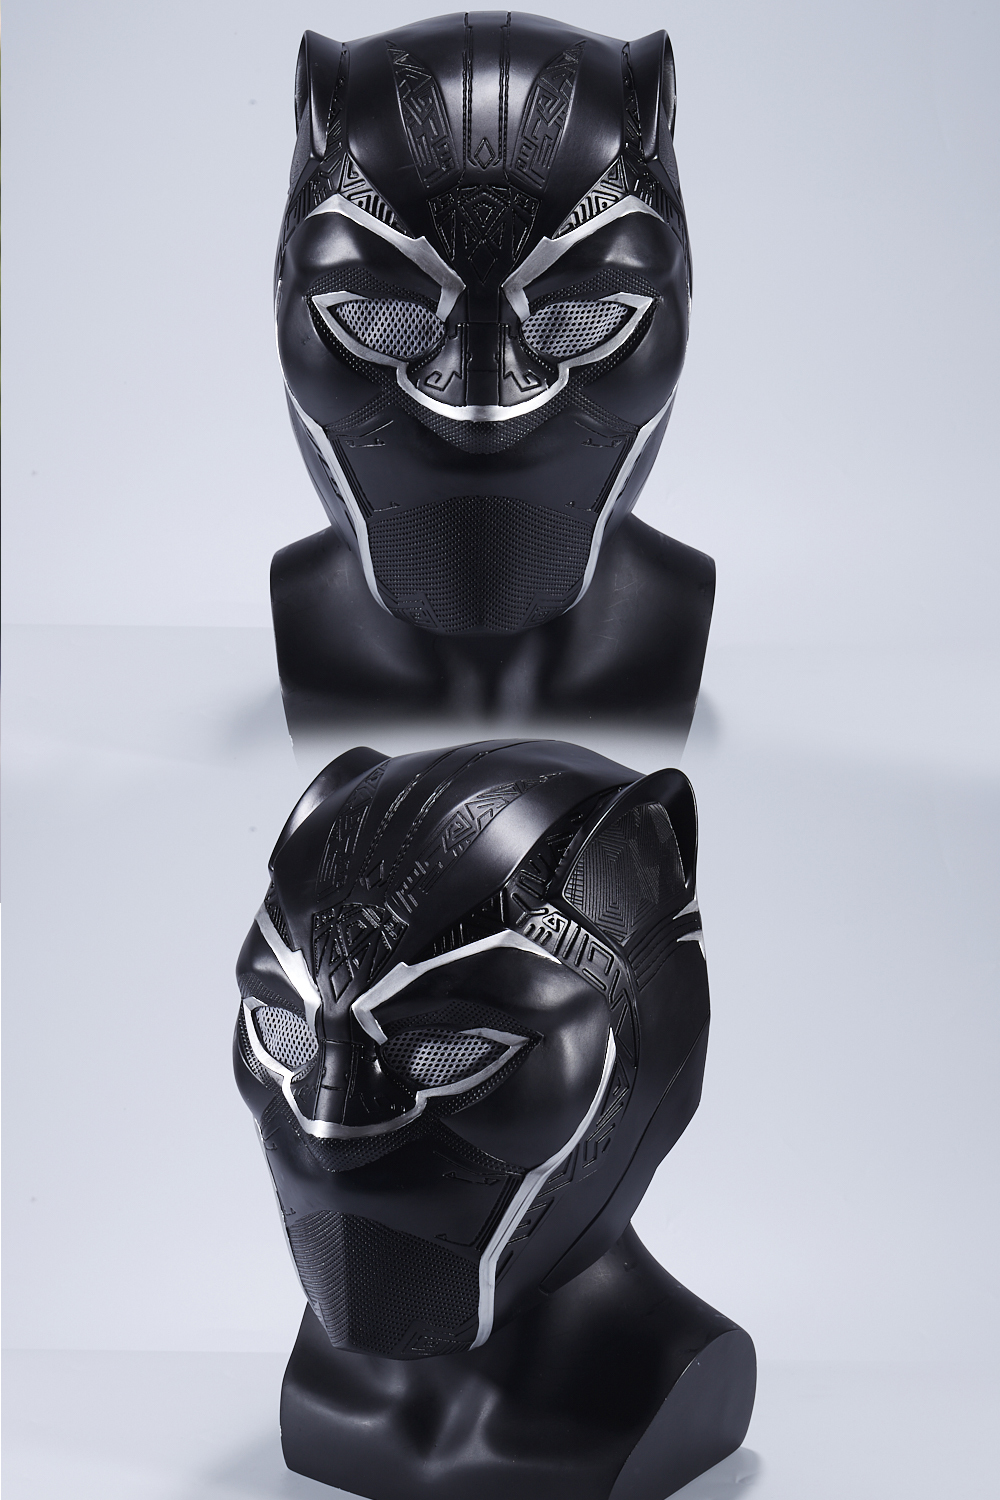 New Year Captain America Civil War T'Challa Black Panther Wakanda Cosplay Mask Black Helmet Carnival Party Mask For Adult 2018 (3)